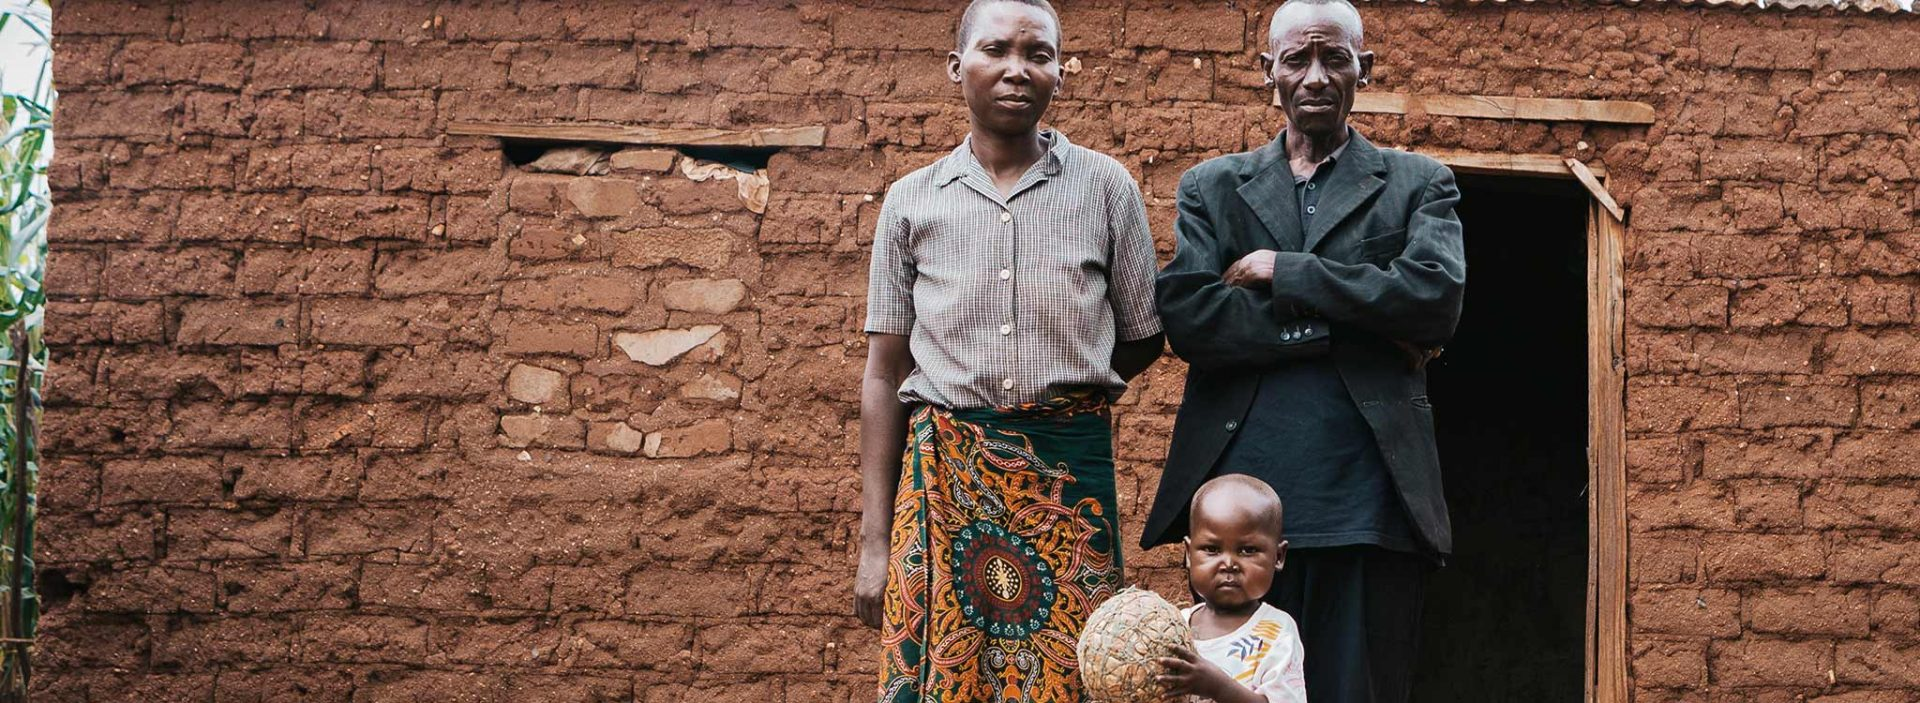 Four-year-old Rodrick and his family in Tanzania. Action Against Hunger helped Rodrick recover from malnutrition.